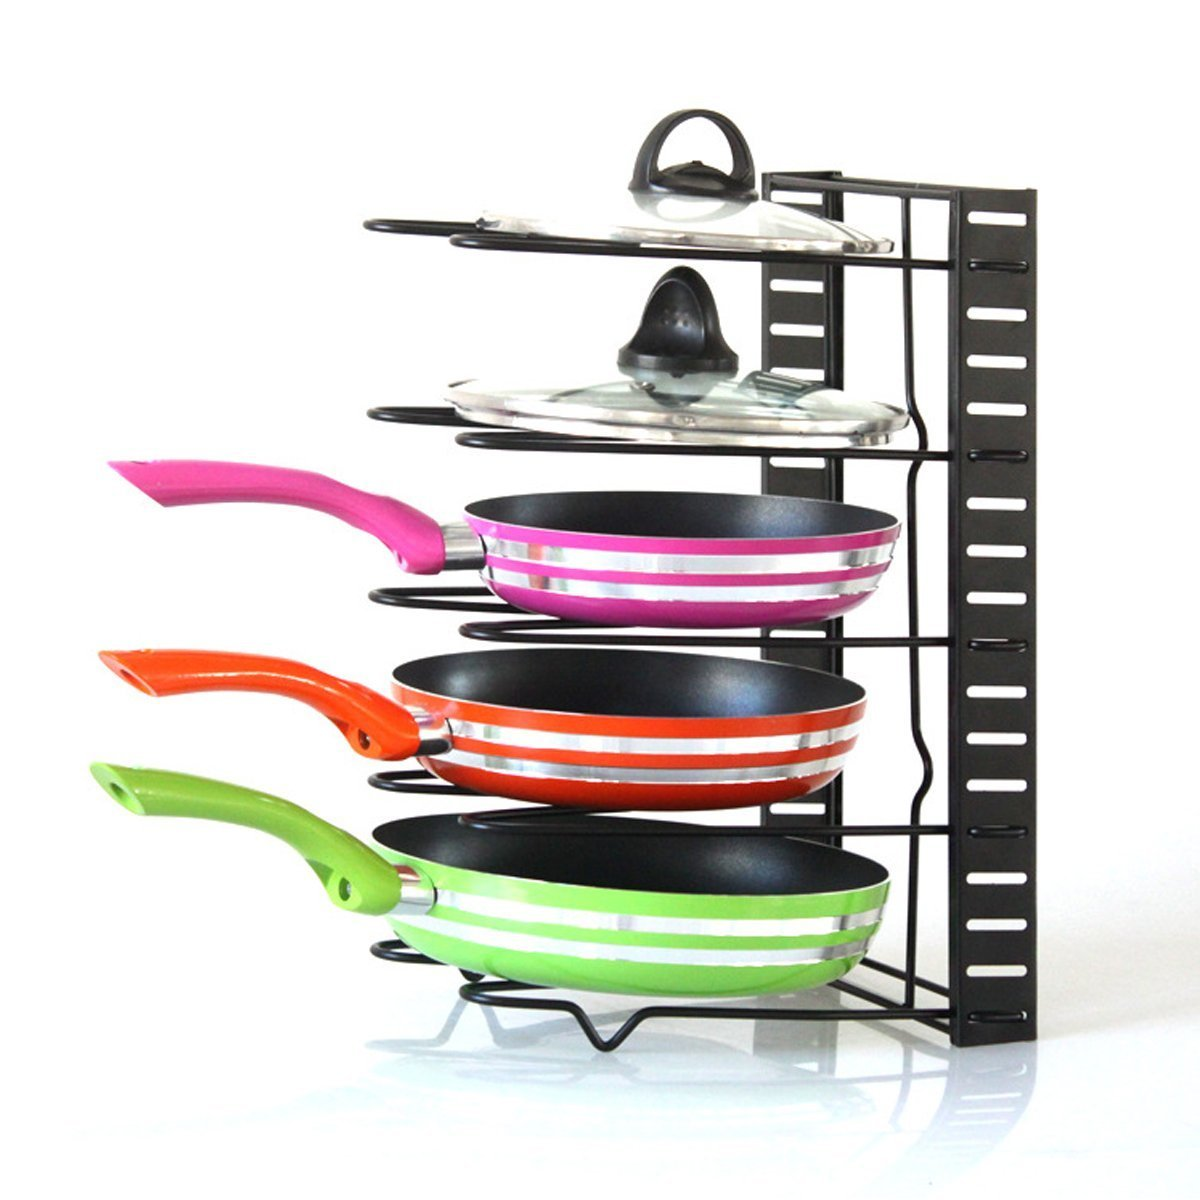 Kitchen Pan and Pot Organizer Rack: Stores 5+ Pans Cabinet Pantry Cupboard Bakeware Plate Holder Storage Solution